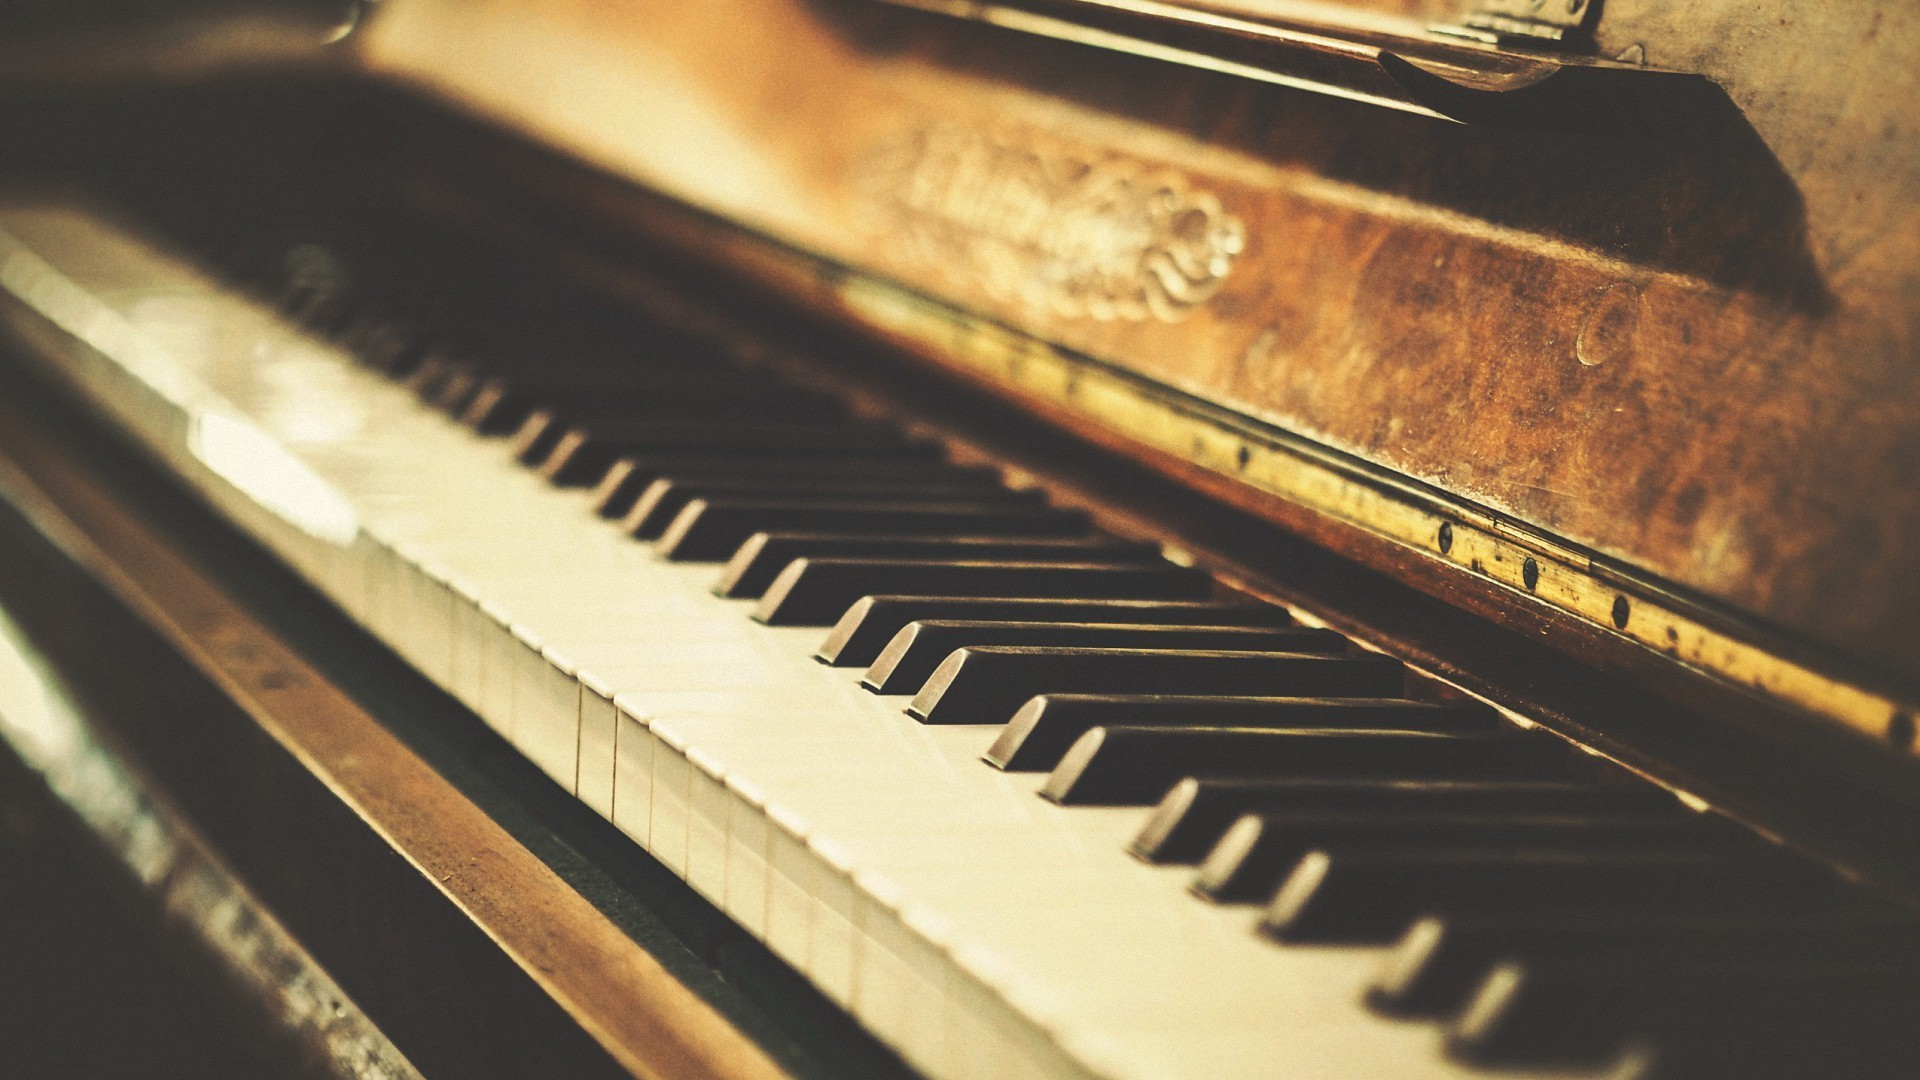 Res: 1920x1080, Piano Retro Music Hd Wallpapers